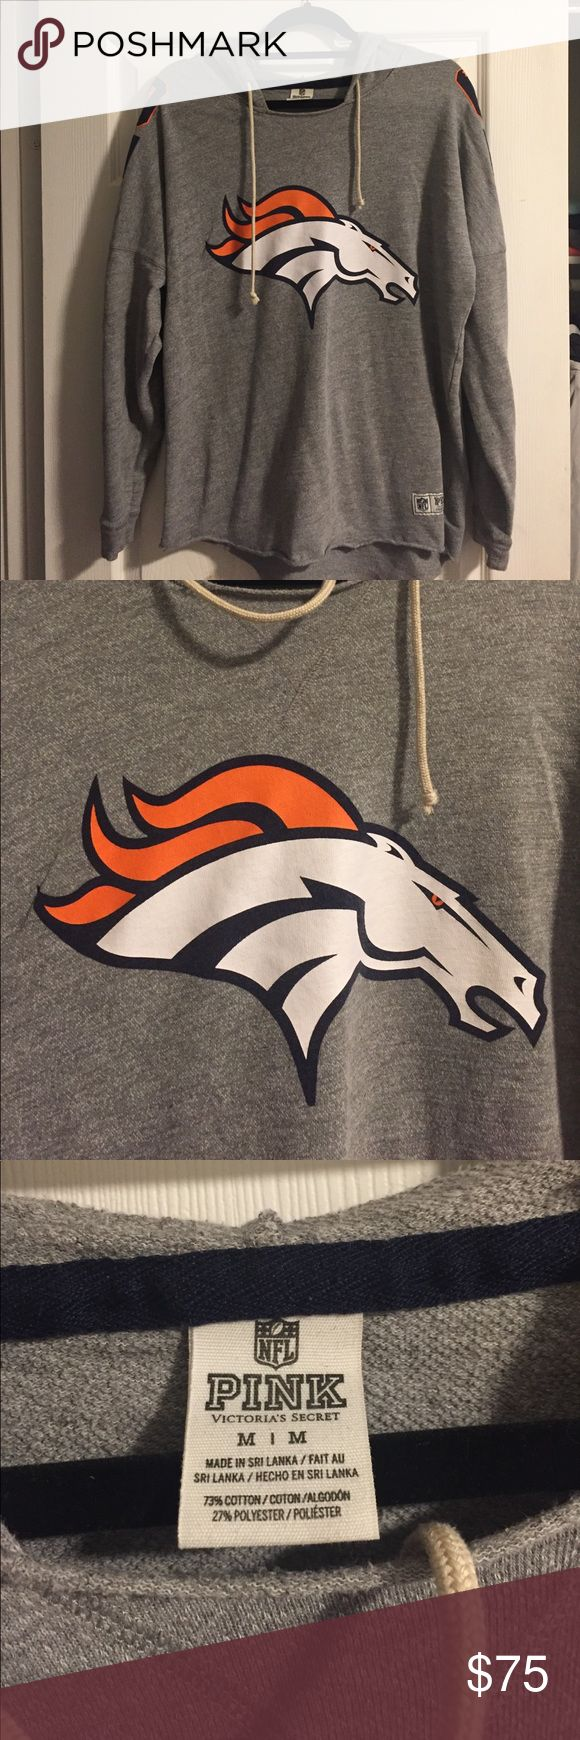 Denver Broncos Pink Sweatshirt Longer length Denver Broncos sweatshirt. Size medium but is a relaxed fit. Great condition.  No holes, rips or tears. PINK Victoria's Secret Tops Sweatshirts & Hoodies